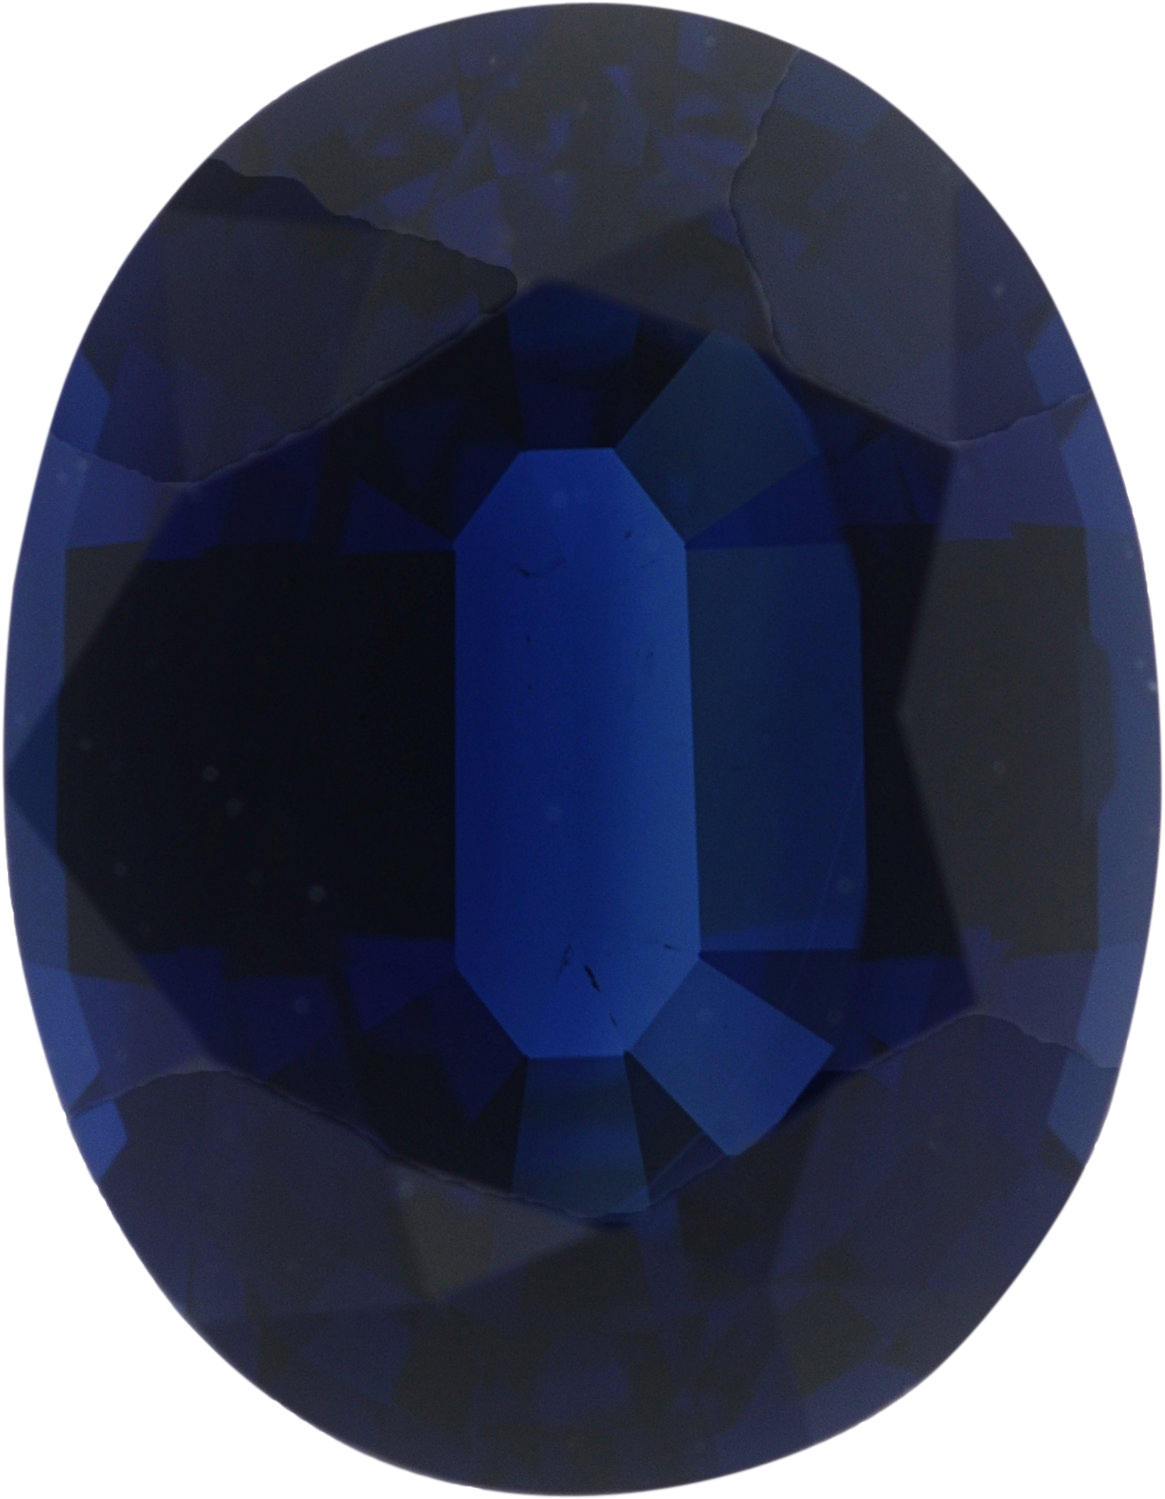 2.58 carats Blue Loose Sapphire Gemstone in Oval Cut, 9.04 x 7.03 mm